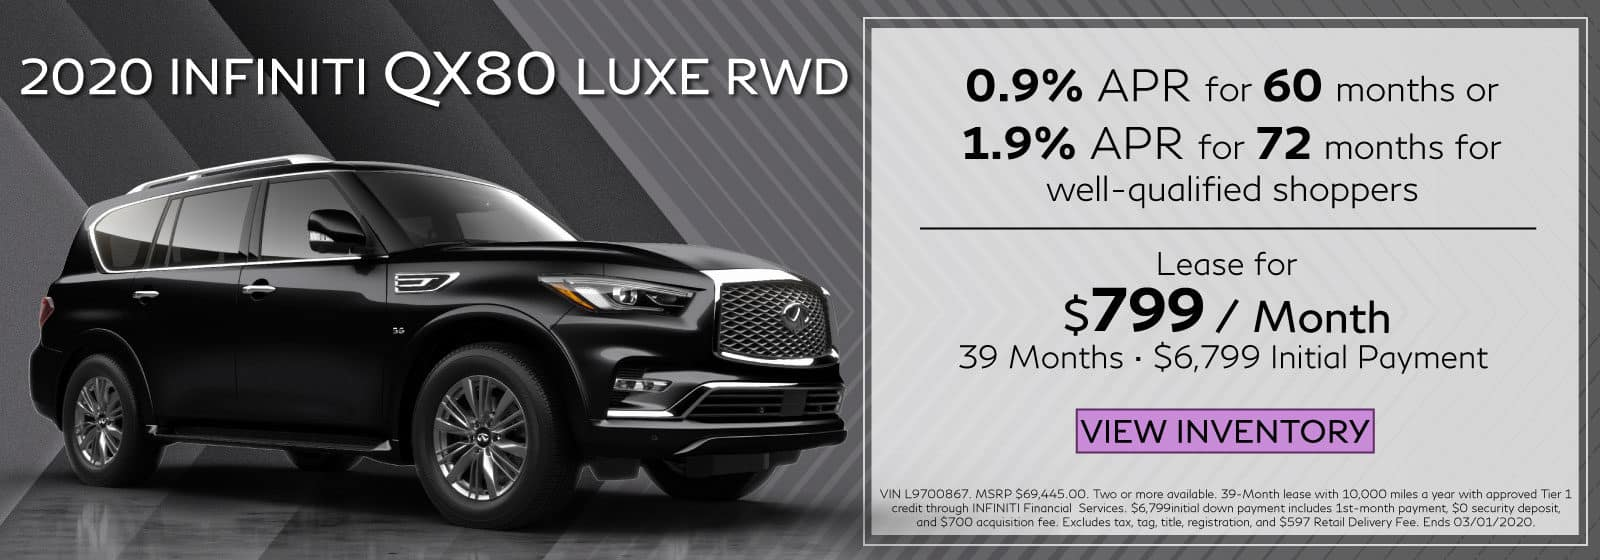 2020 QX80 LUXE RWD. Lease for $799 a month for 39 months. $6,799 initial payment. OR 0.9% APR for 60 months OR 1.9% APR for 72 months. Black QX80 on black and gray abstract background. View Inventory button.